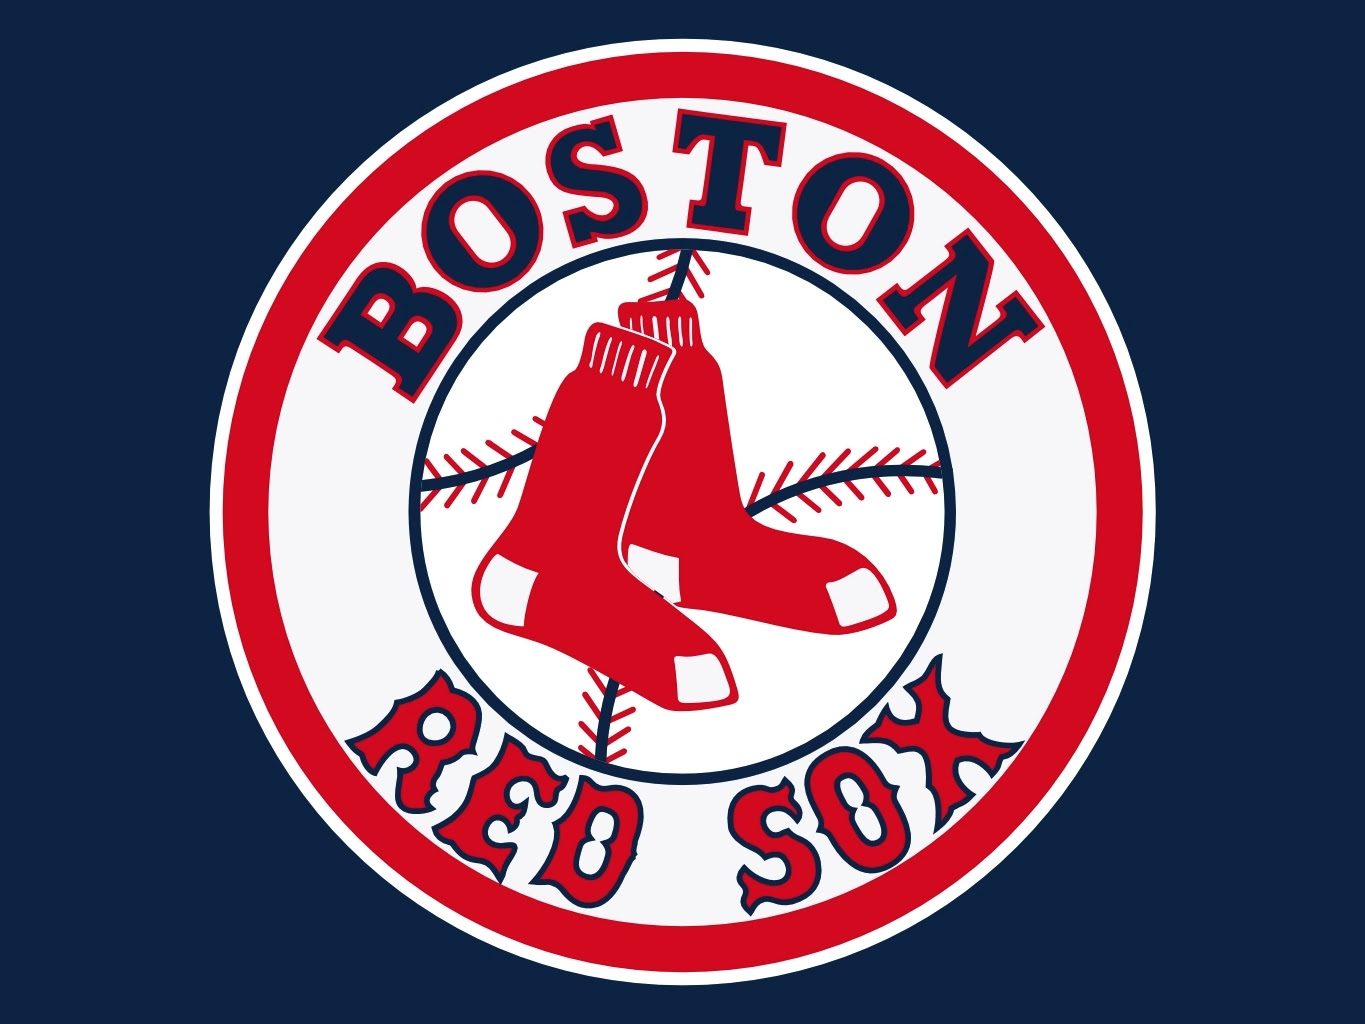 Upcoming Events Red Sox Vs Tampa Bay Rays The North Star